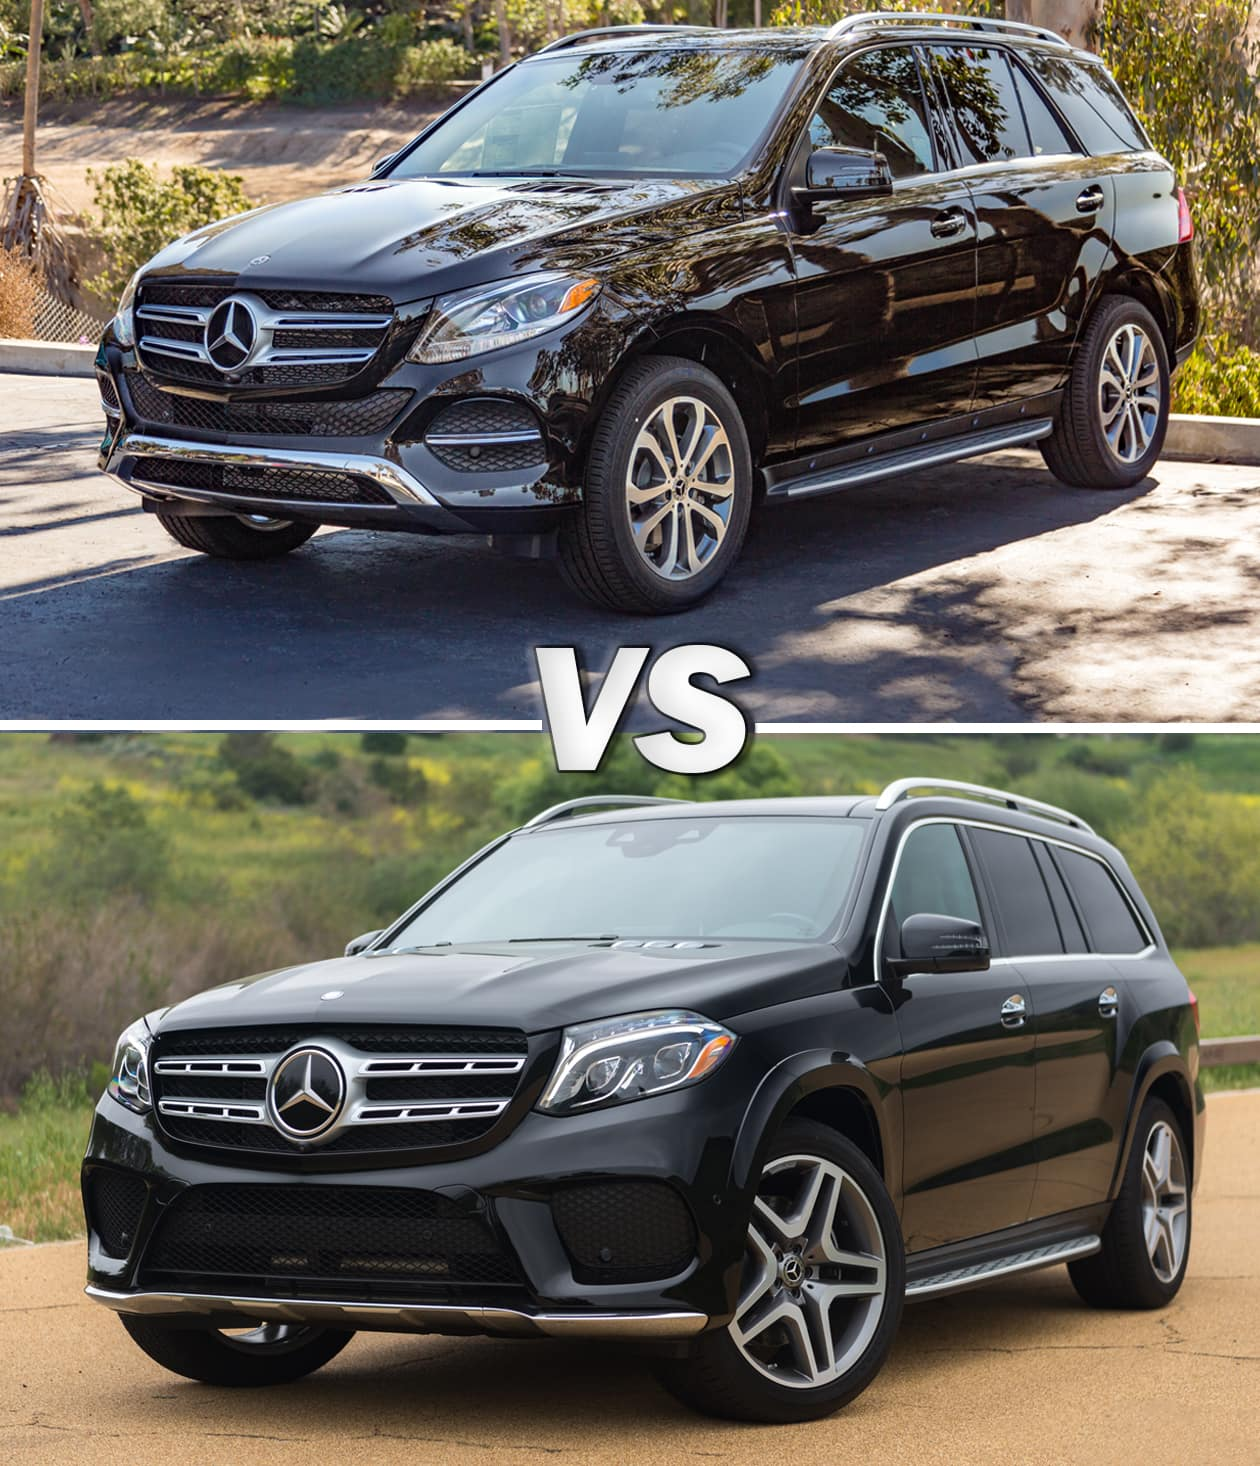 M-Class Vs. GL-Class: What's The Difference?